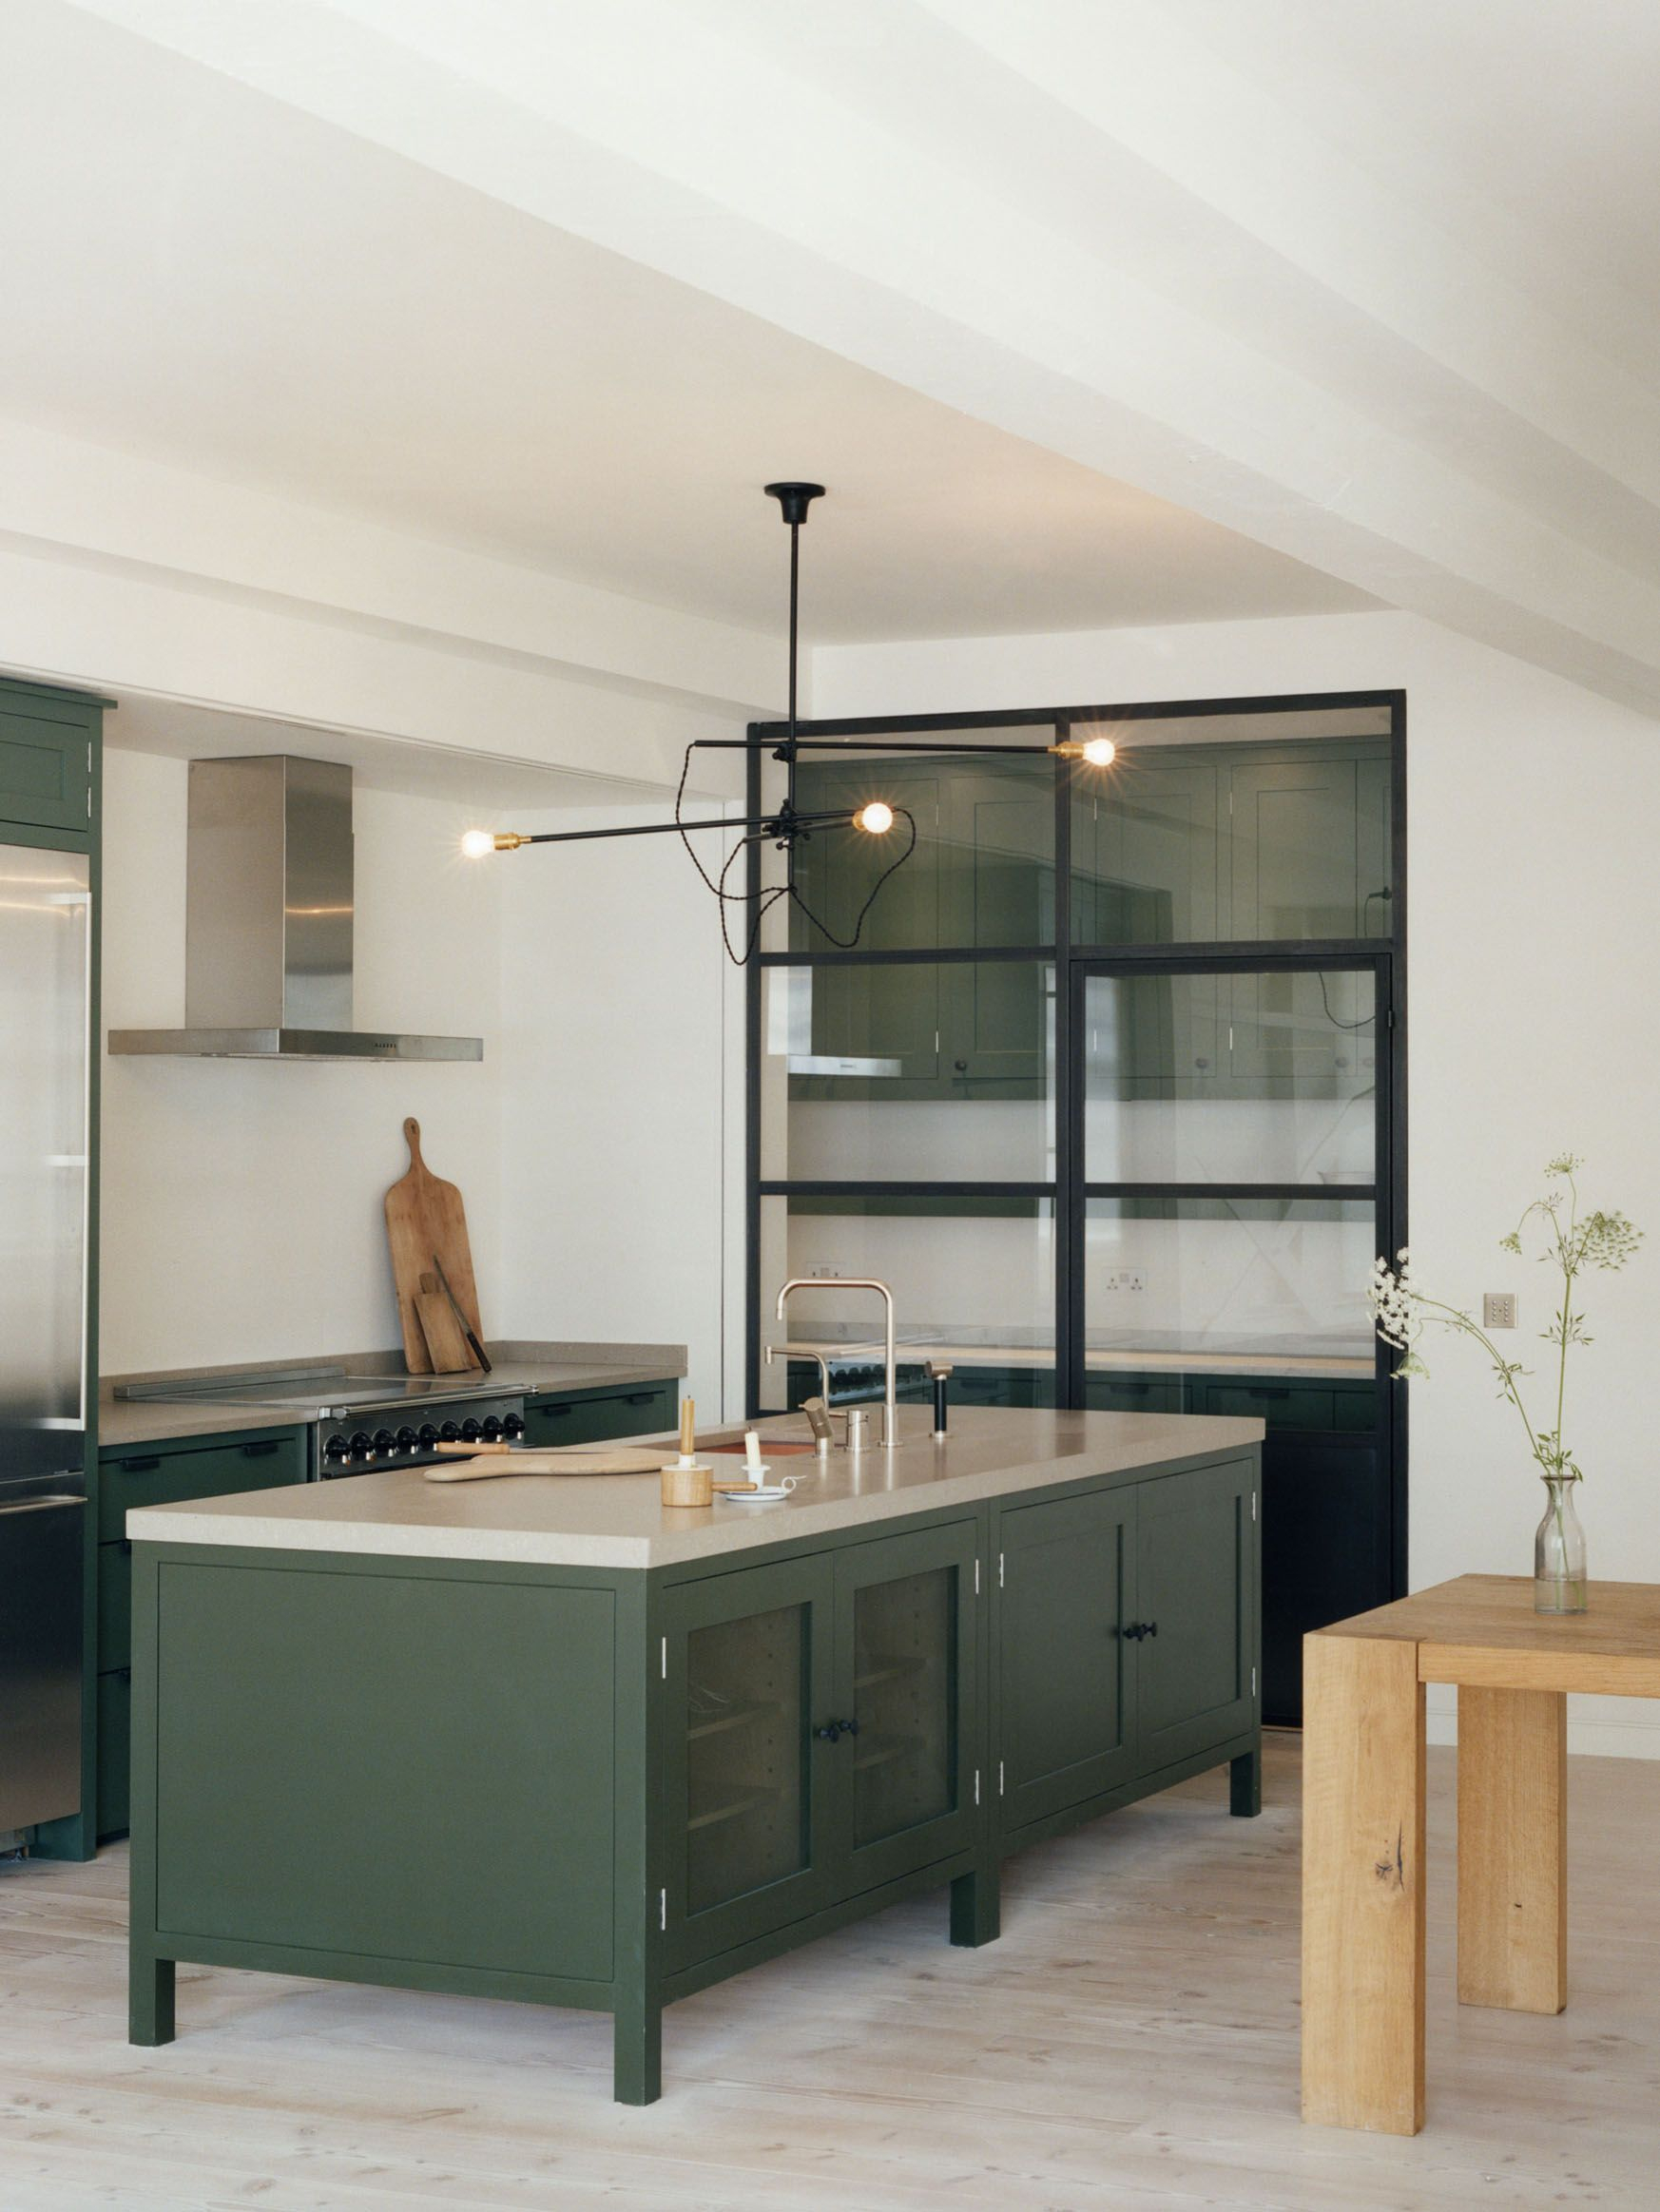 Green Cabinet Kitchens Lexi Westergard Design Blog In The